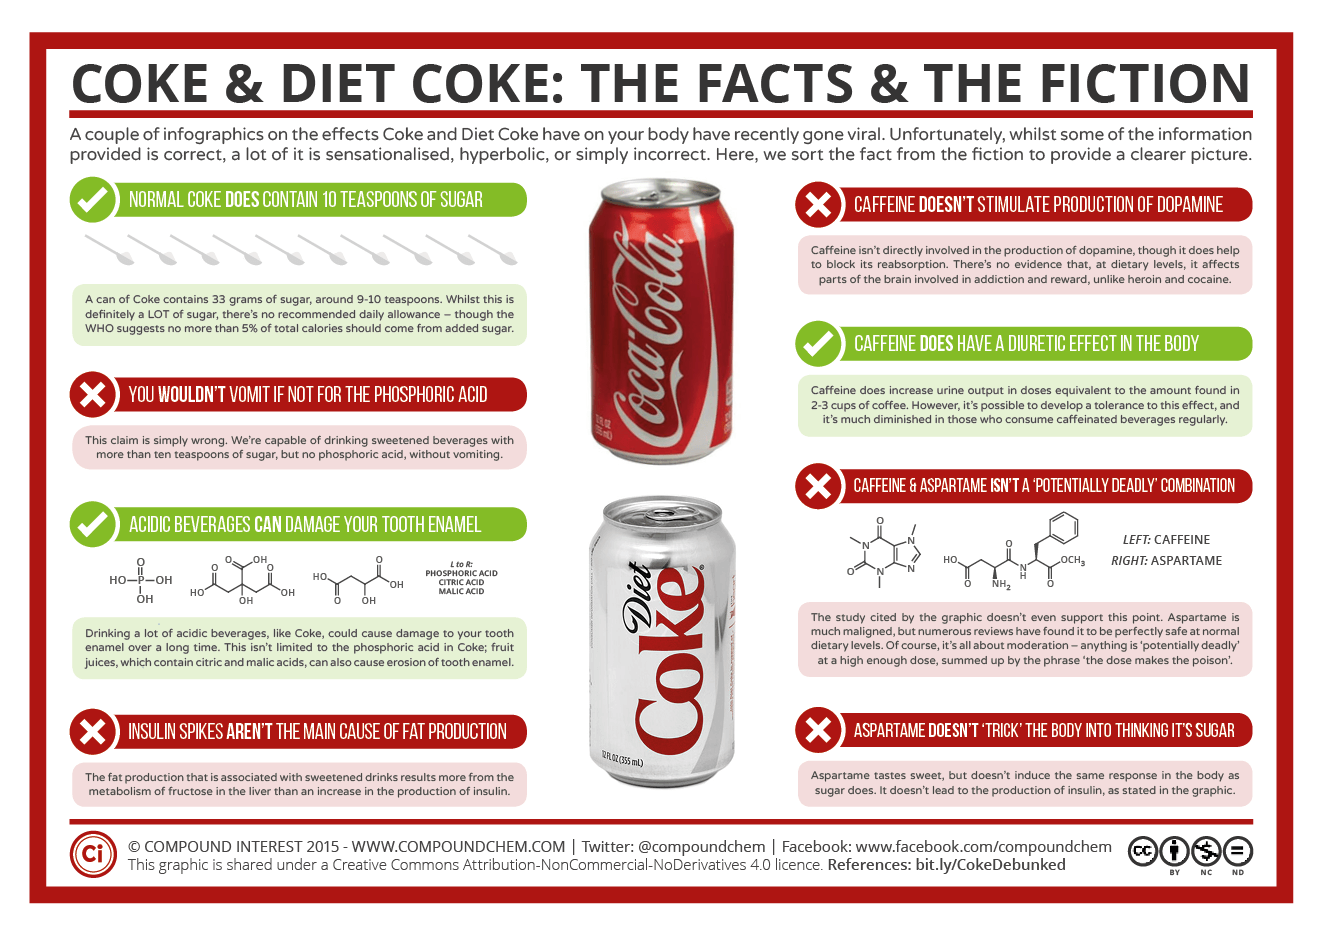 Compound Interest - Coke & Diet Coke: The Facts and the Fiction